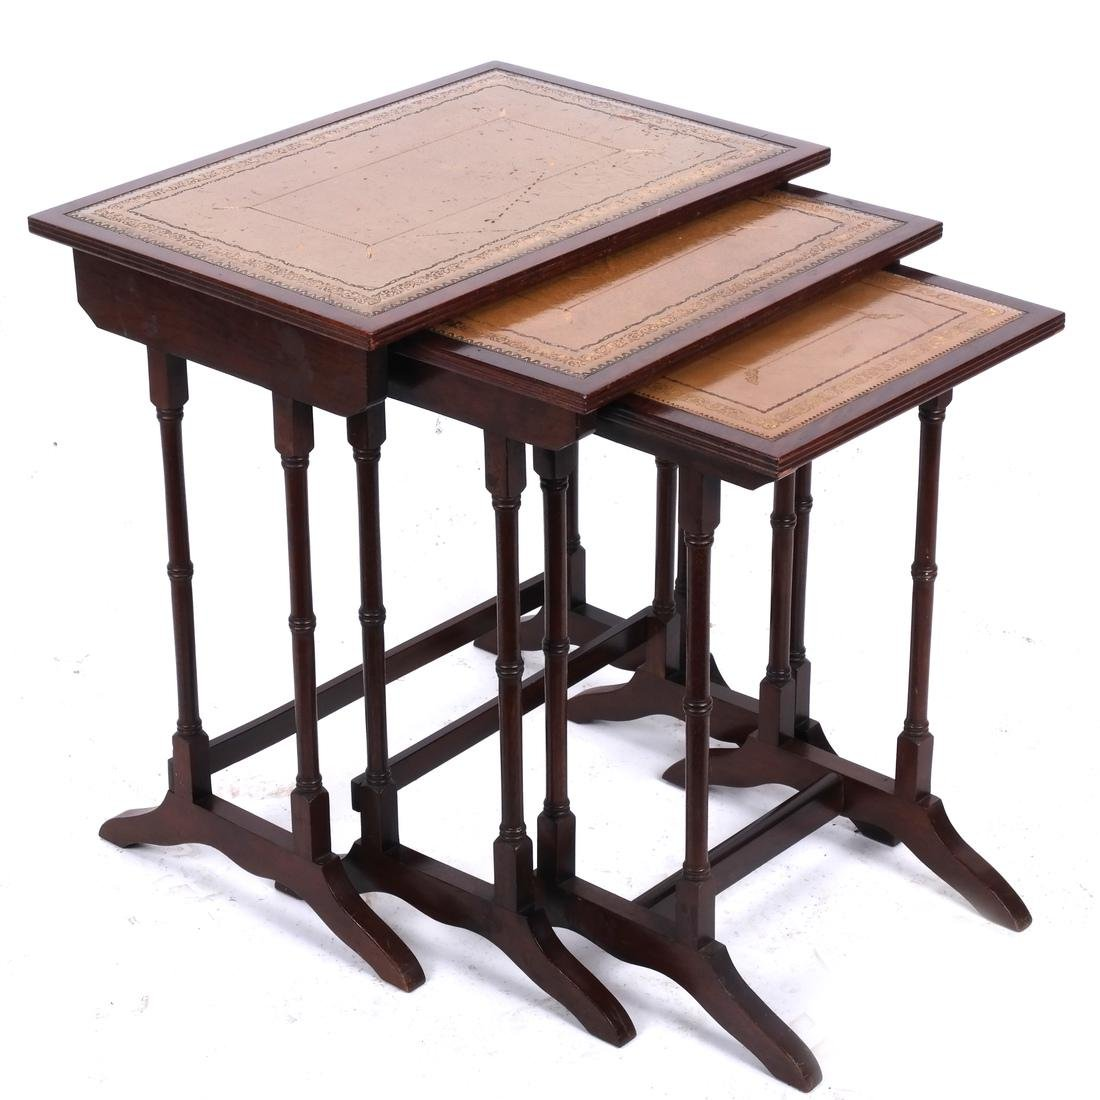 Mahogany Nest of Leather-Top Tables